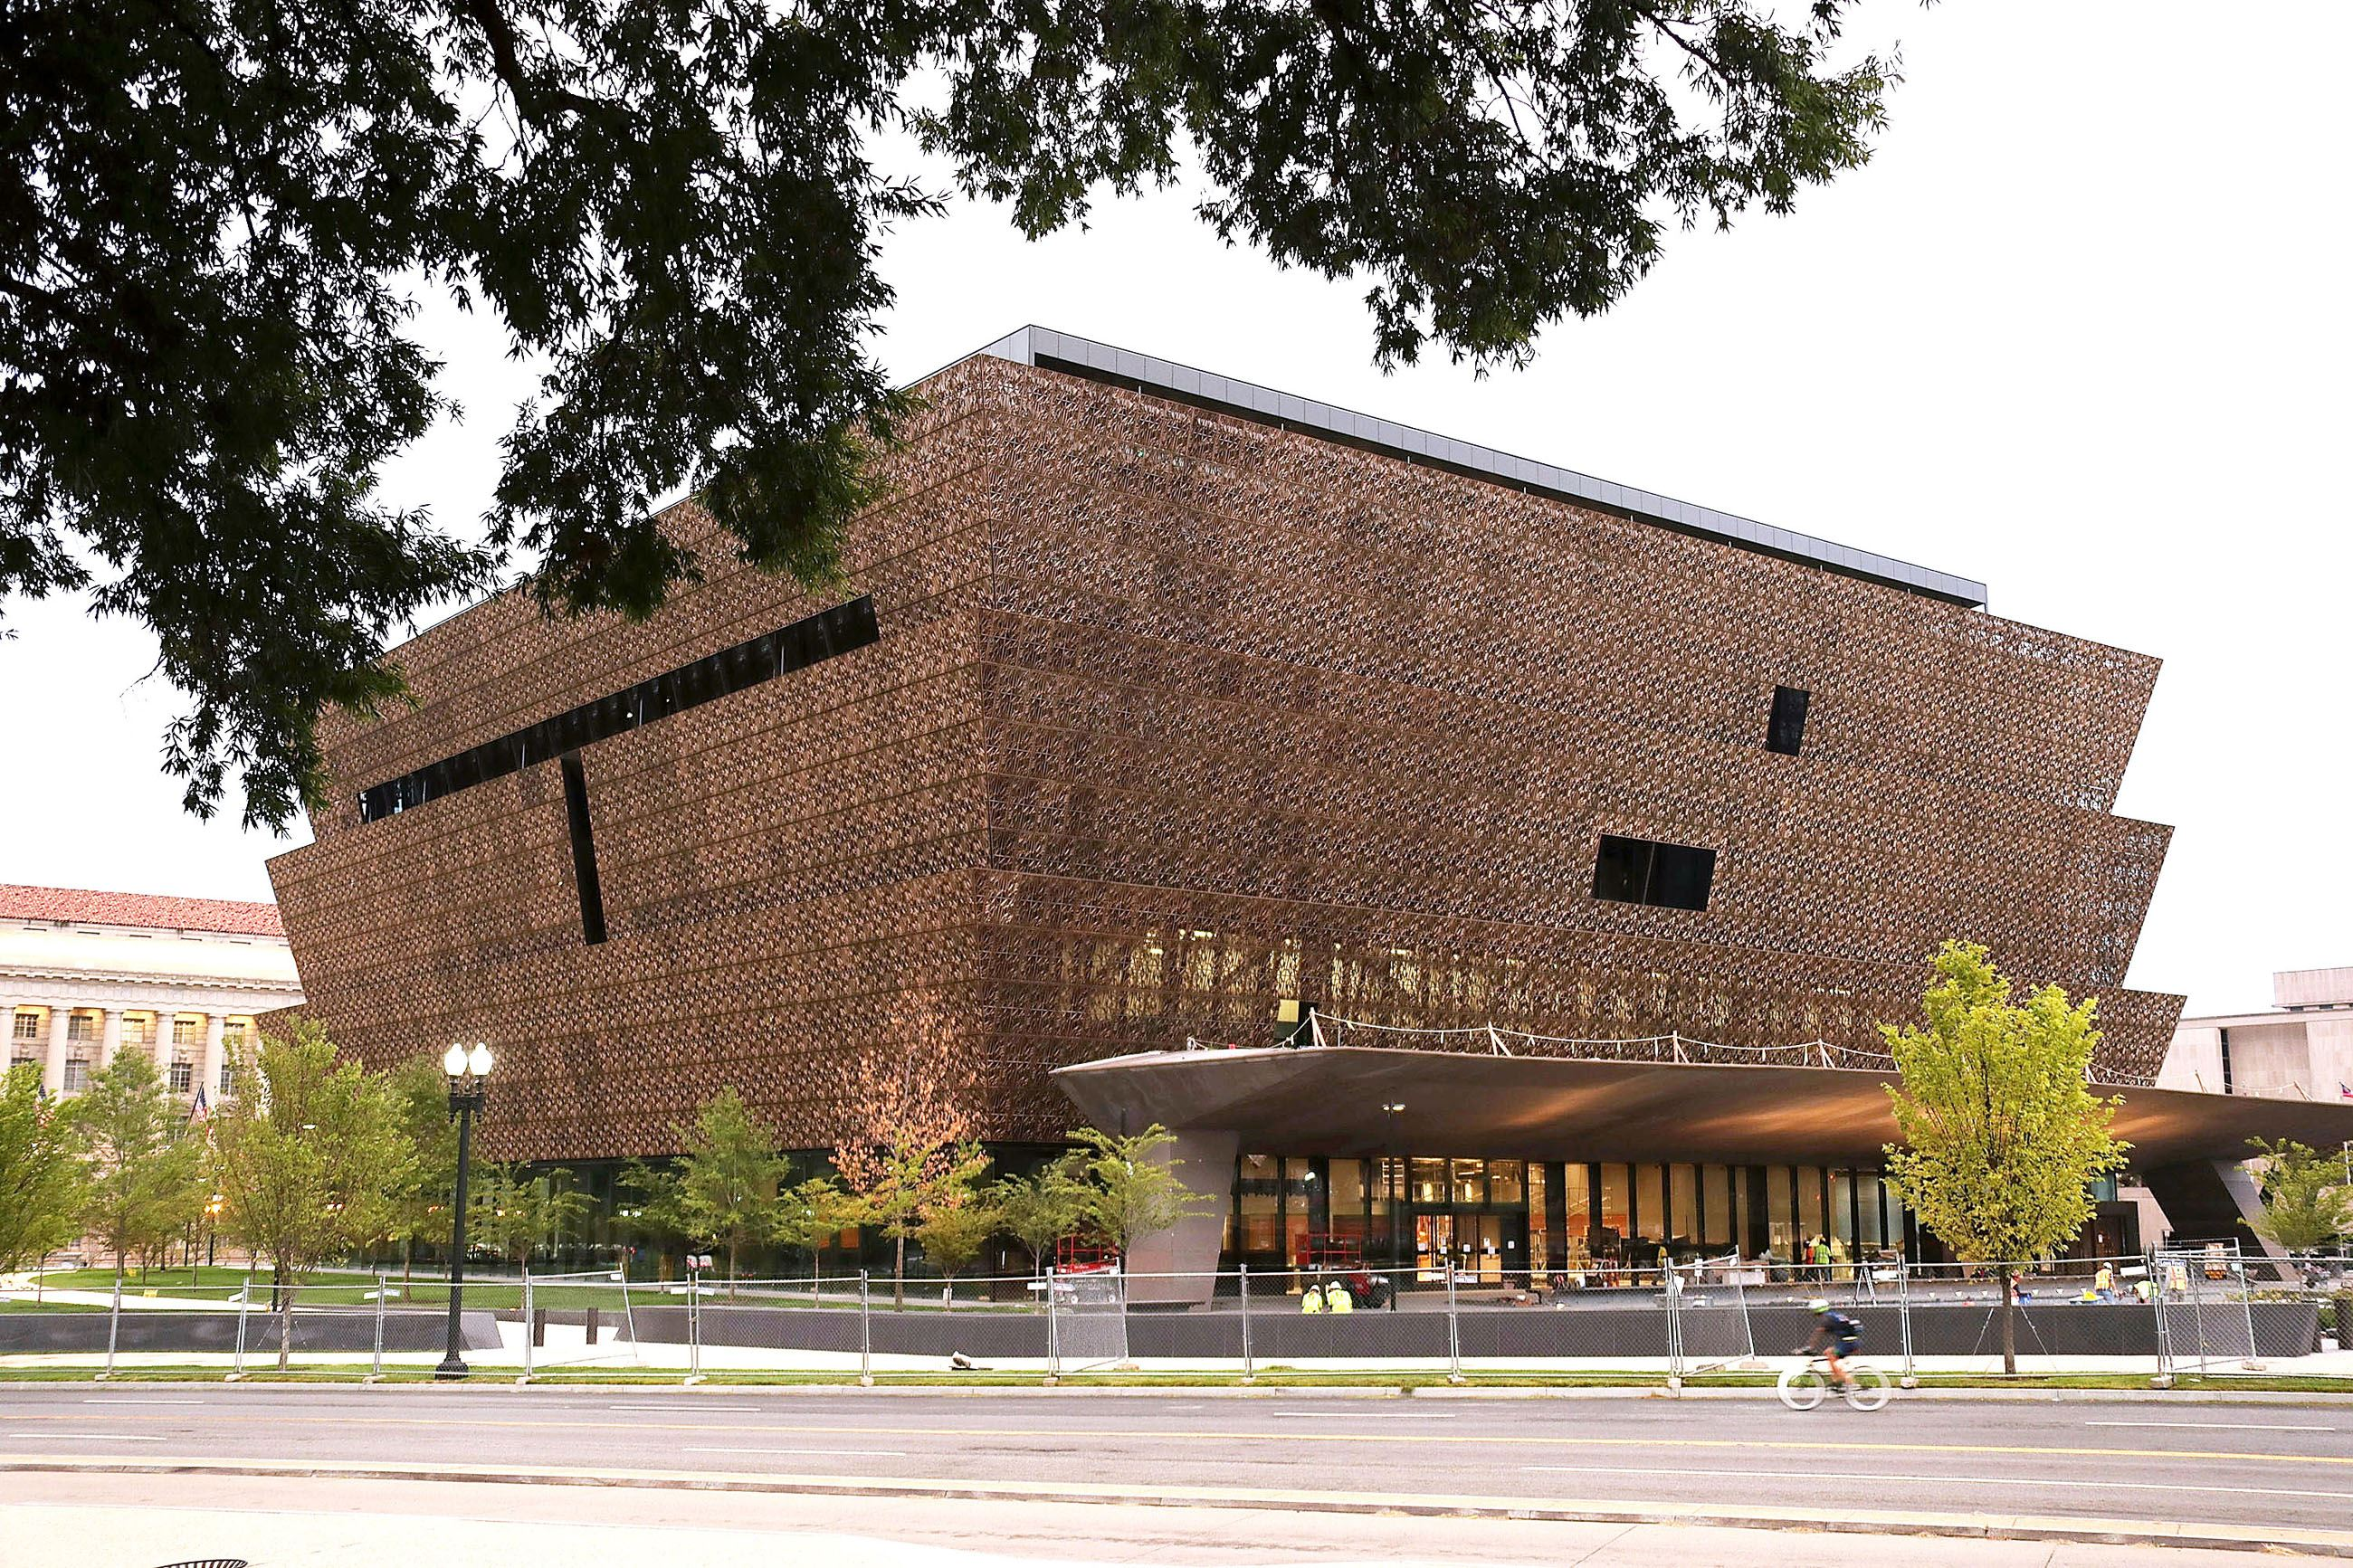 SweetHome0326 The National Museum of African American History and Culture opened in Washington D.C., on Sept. 1, 2016. The museum was established by an Act of Congress in 2003.